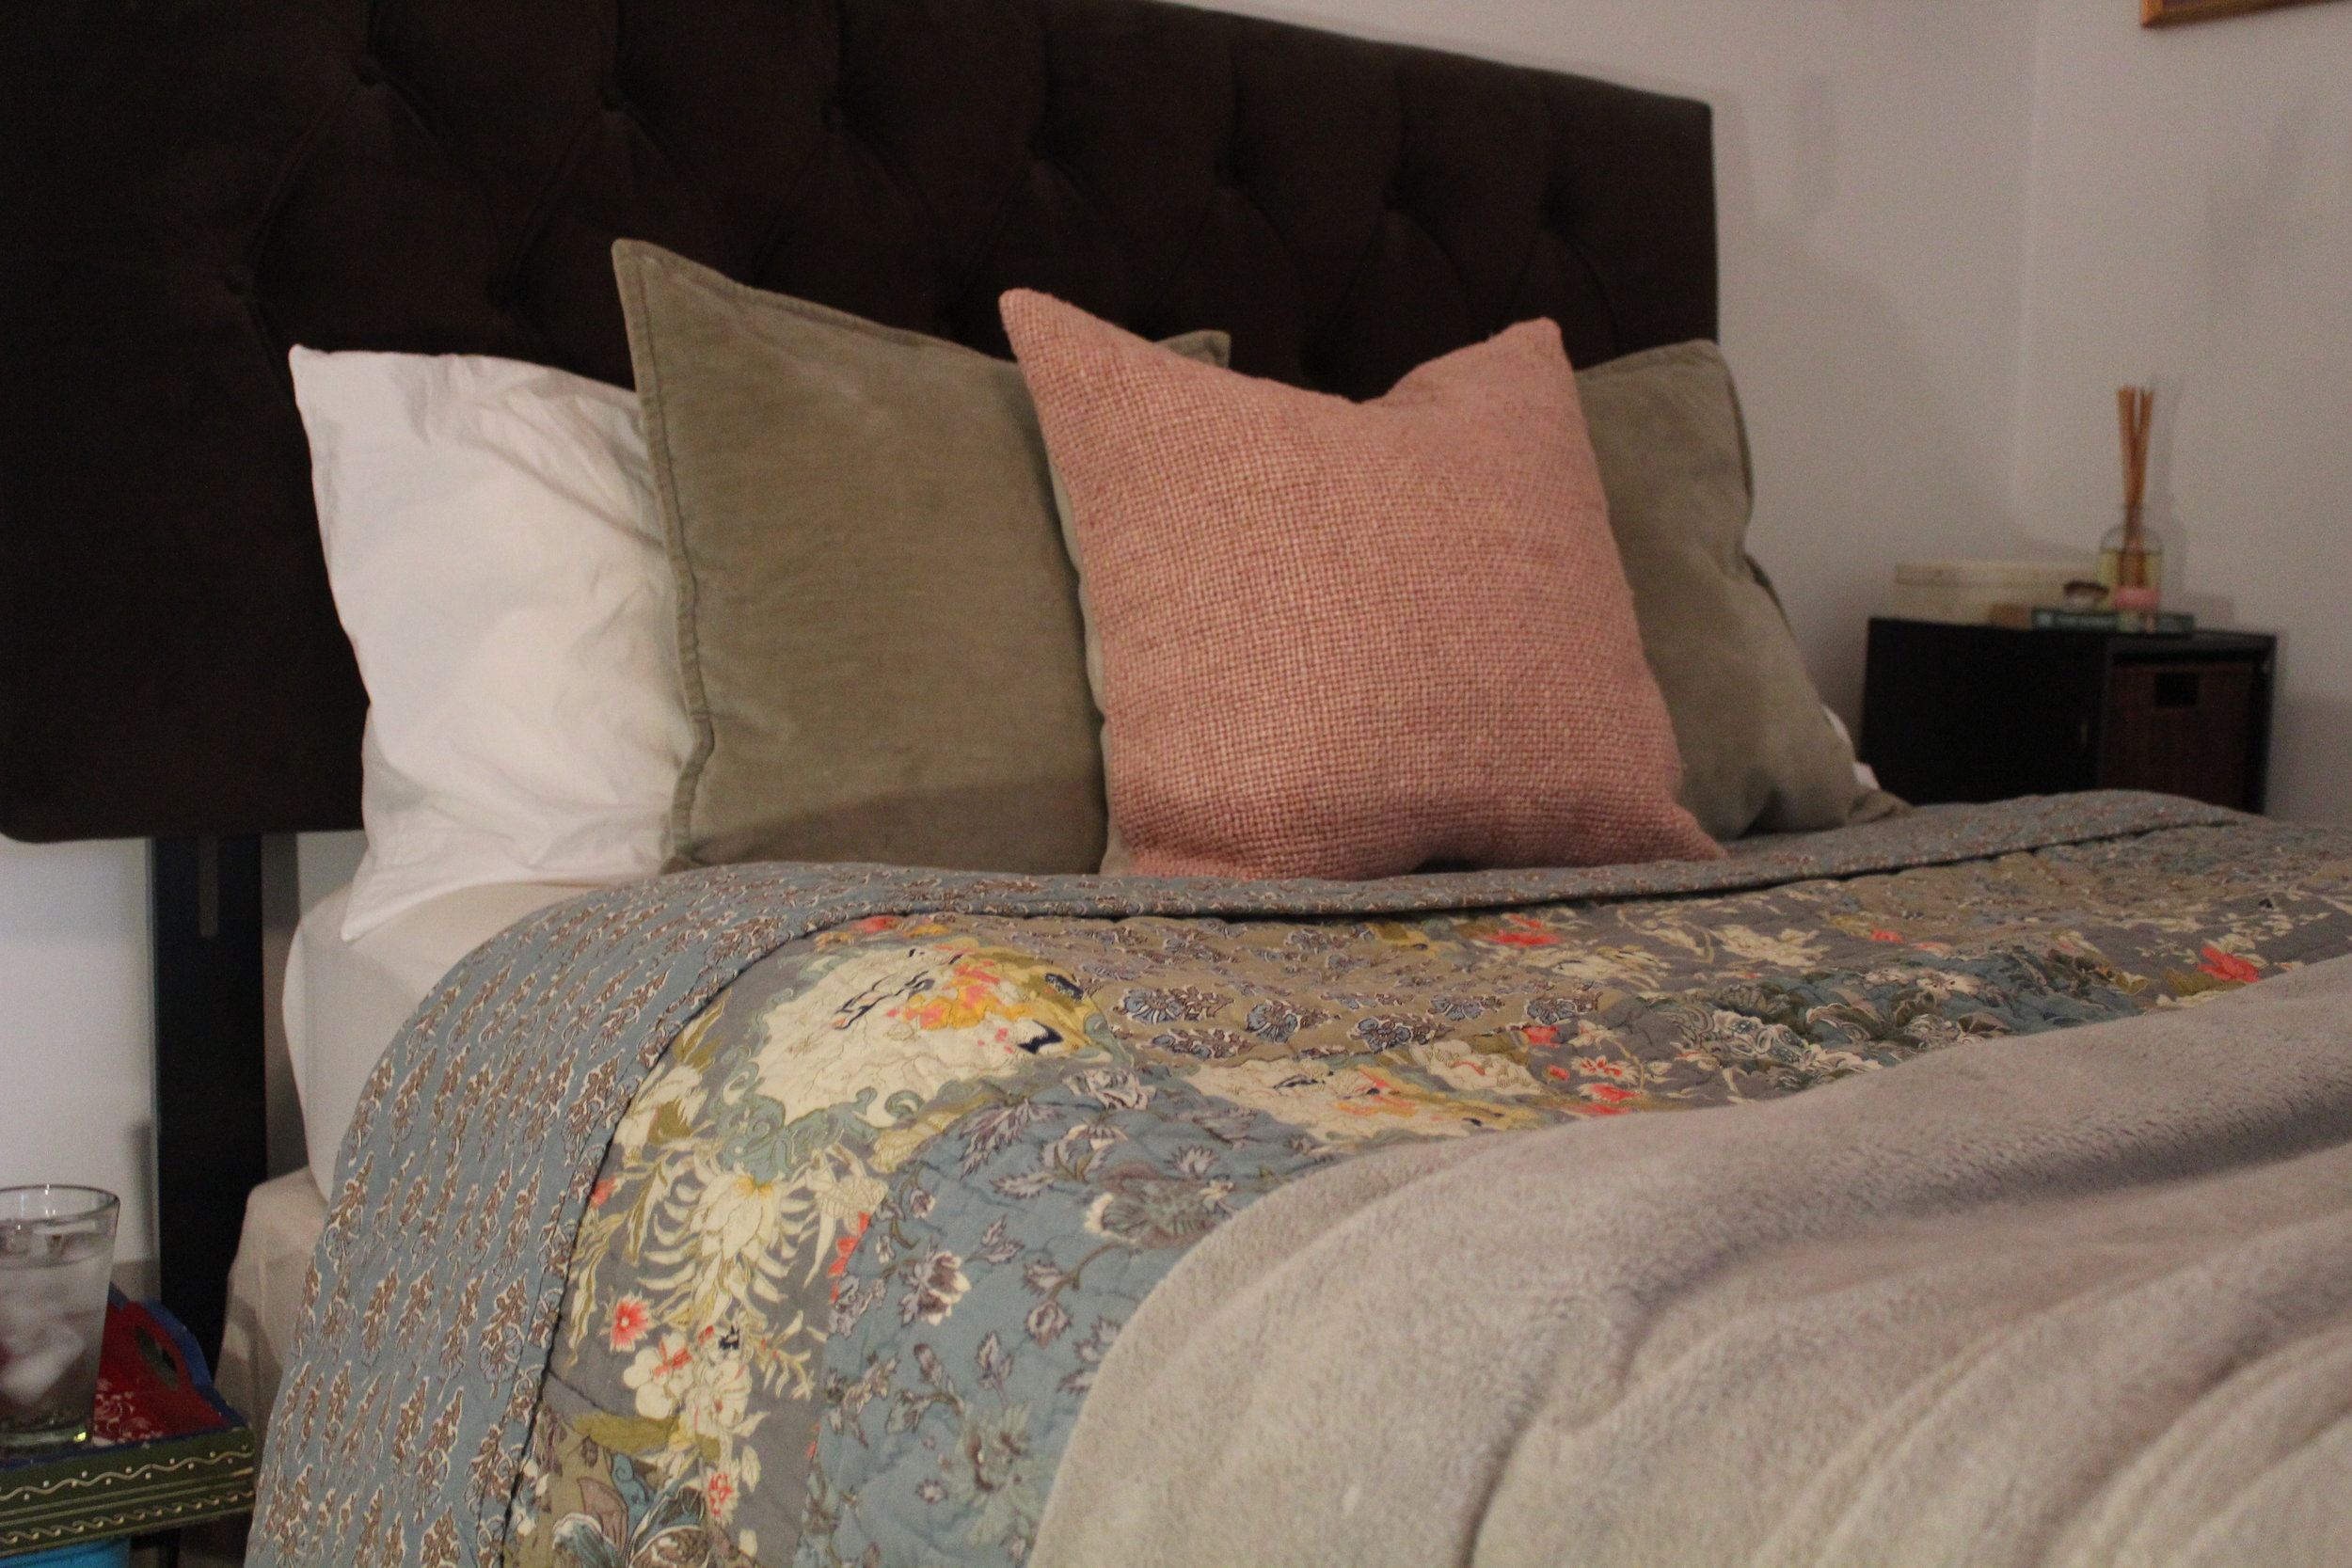 SUMMER - Start with a bright and colorful patchwork quilt and just add on one solid blanket for a relaxed look. The white sleeping pillows are behind two 20